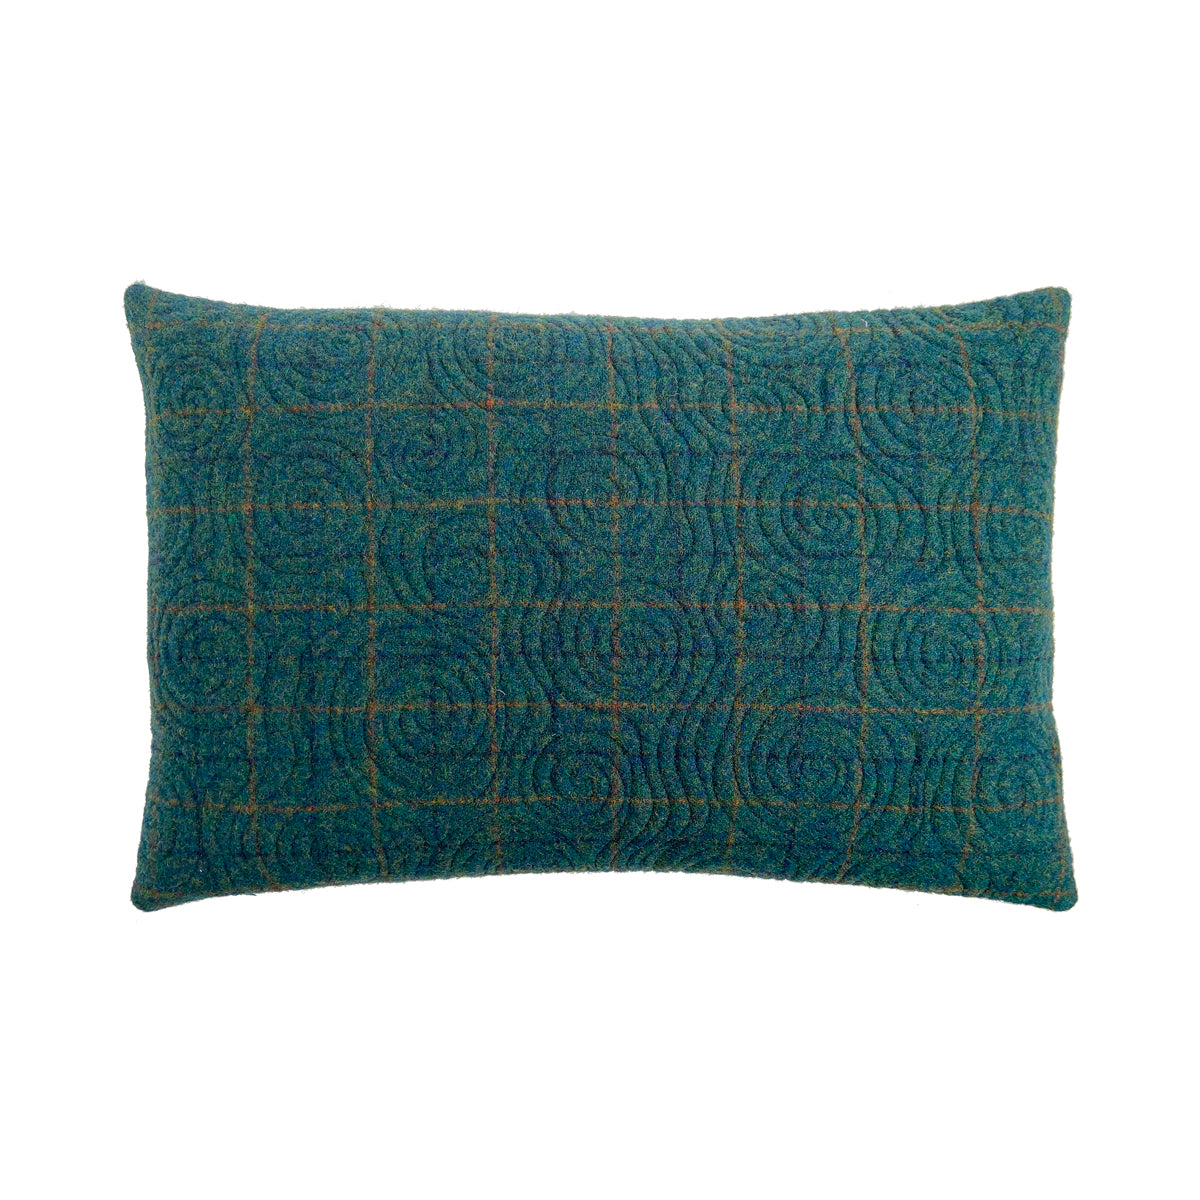 NE 41st Avenue Fancy Stitches Cushion • 12x18 A